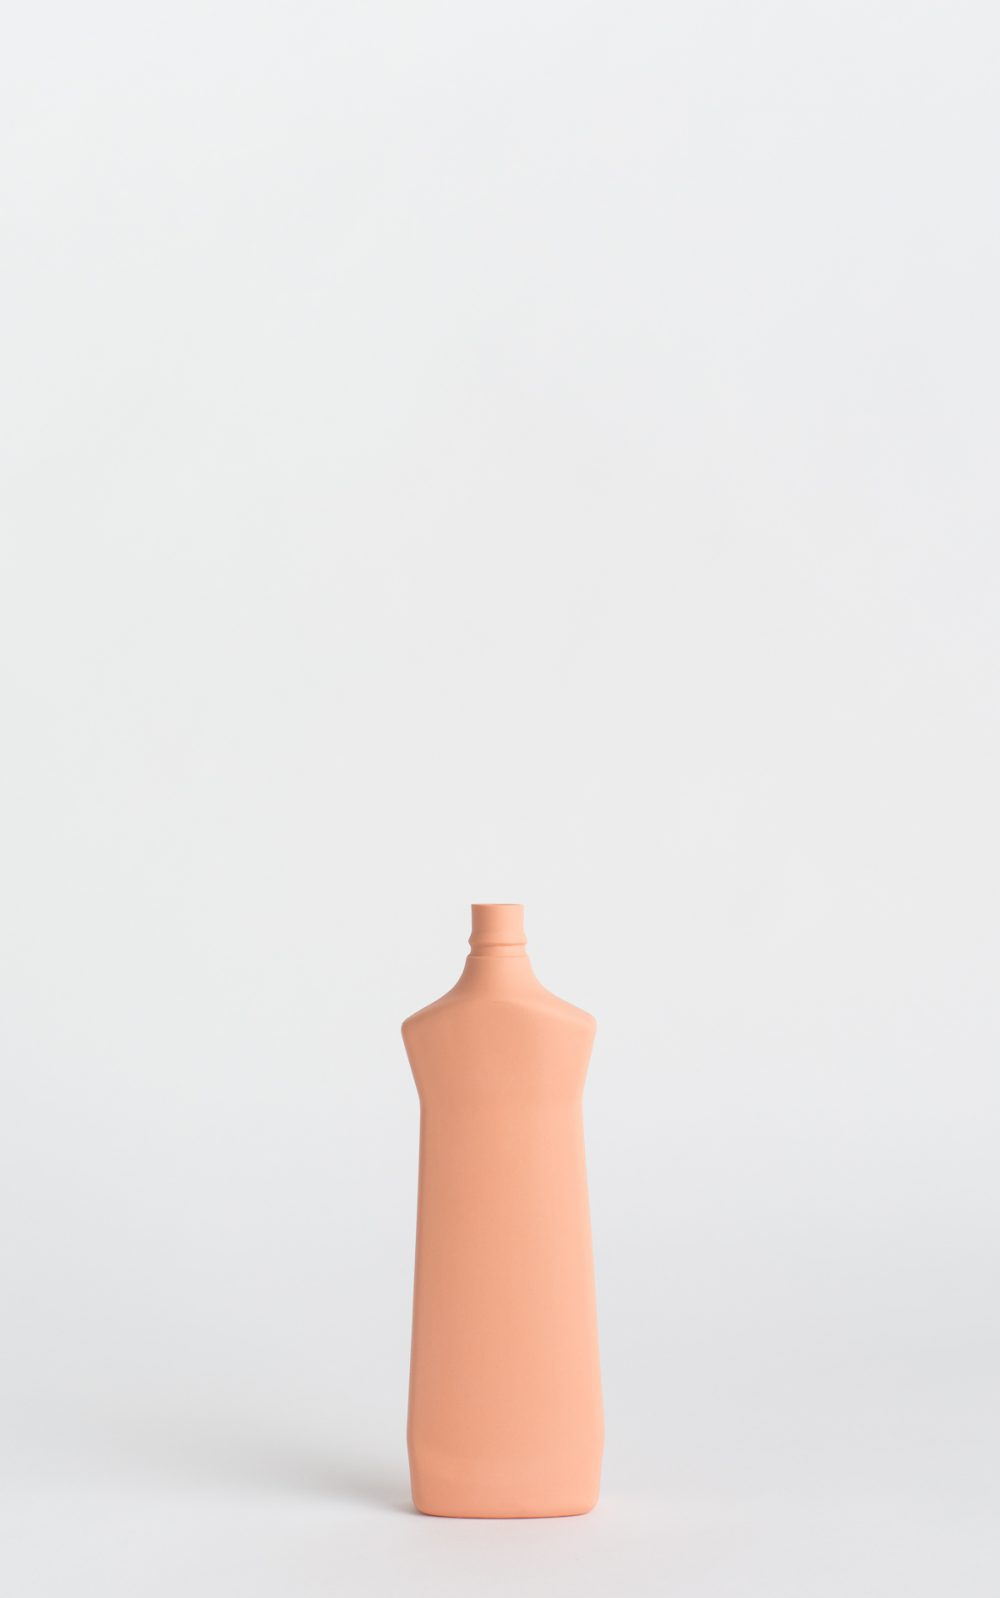 bottle vase #1 orange